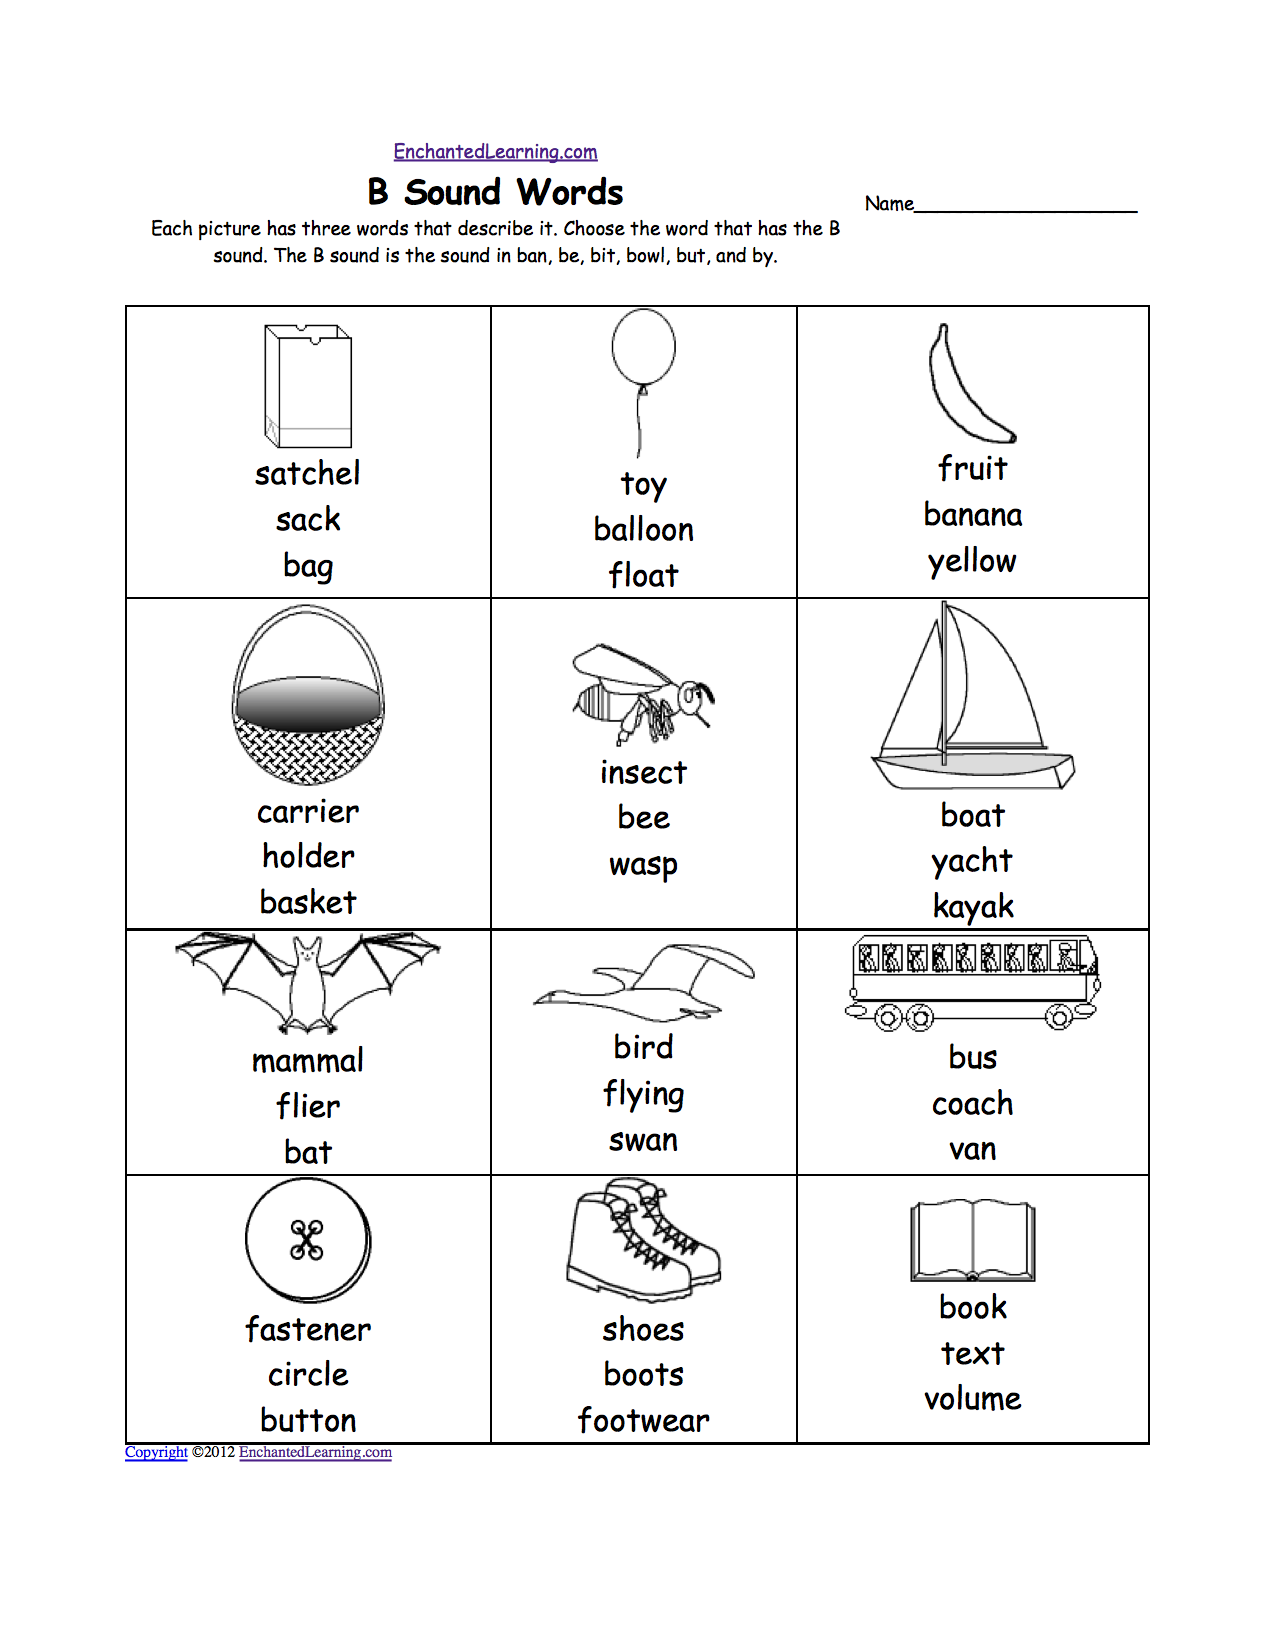 Weirdmailus  Nice Phonics Worksheets Multiple Choice Worksheets To Print  With Magnificent Quotbquot Sound Phonics Worksheet Multiple Choice Each Picture Has Three Words That Describe It Choose The Word That Has A Quotbquot Sound The Quotbquot Sound Is The Sound  With Captivating Declaration Of Independence Worksheet Also Elementary Math Worksheets In Addition Chemistry Chapter  Covalent Bonding Worksheet Answers And Substance Abuse Worksheets As Well As Inferences Worksheet Additionally Summer Worksheets From Enchantedlearningcom With Weirdmailus  Magnificent Phonics Worksheets Multiple Choice Worksheets To Print  With Captivating Quotbquot Sound Phonics Worksheet Multiple Choice Each Picture Has Three Words That Describe It Choose The Word That Has A Quotbquot Sound The Quotbquot Sound Is The Sound  And Nice Declaration Of Independence Worksheet Also Elementary Math Worksheets In Addition Chemistry Chapter  Covalent Bonding Worksheet Answers From Enchantedlearningcom